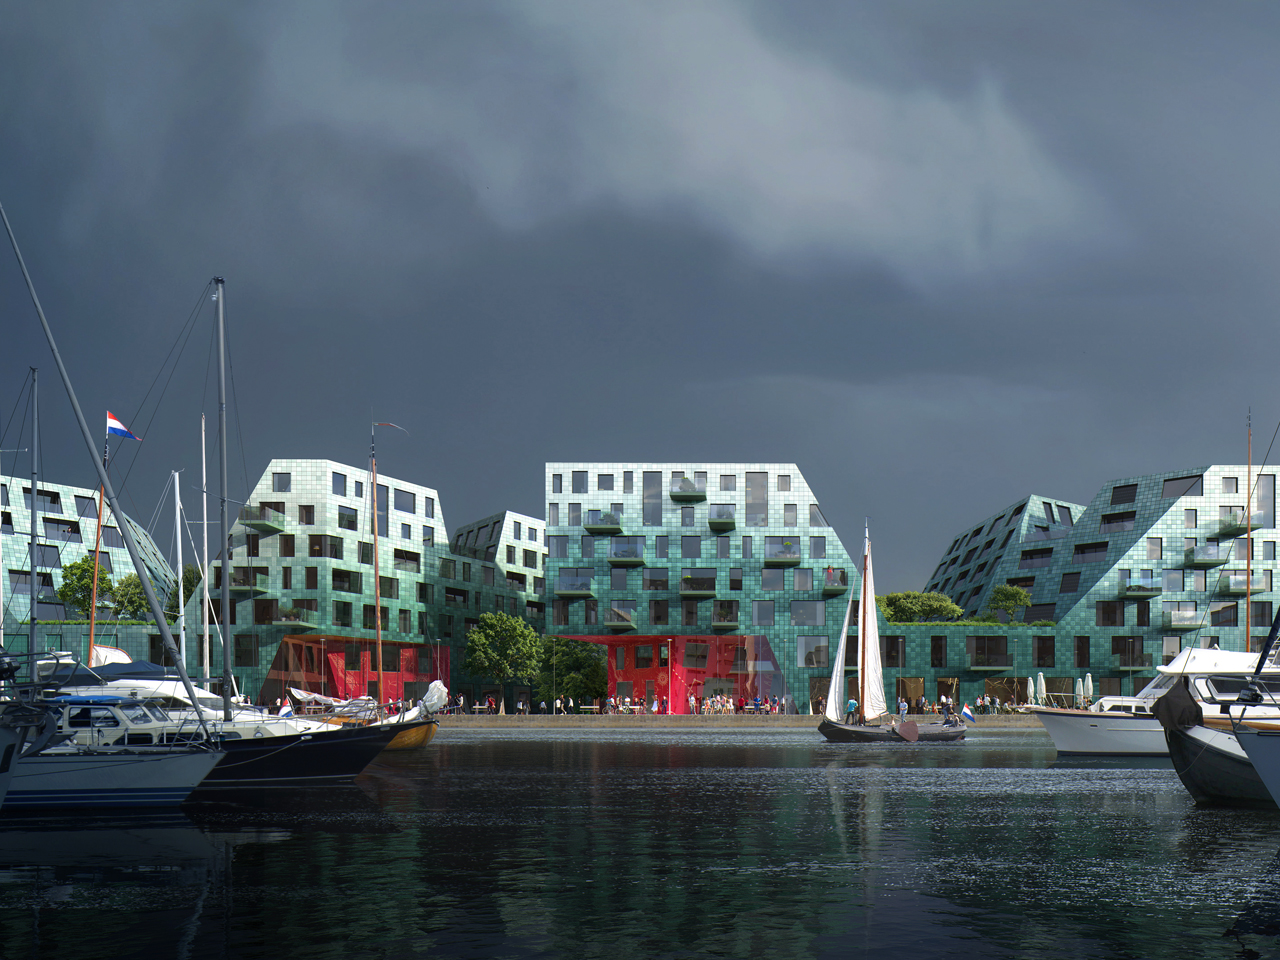 MVRDV designs for IJburg Agora on view at the Amsterdam Architecture Center exhibition